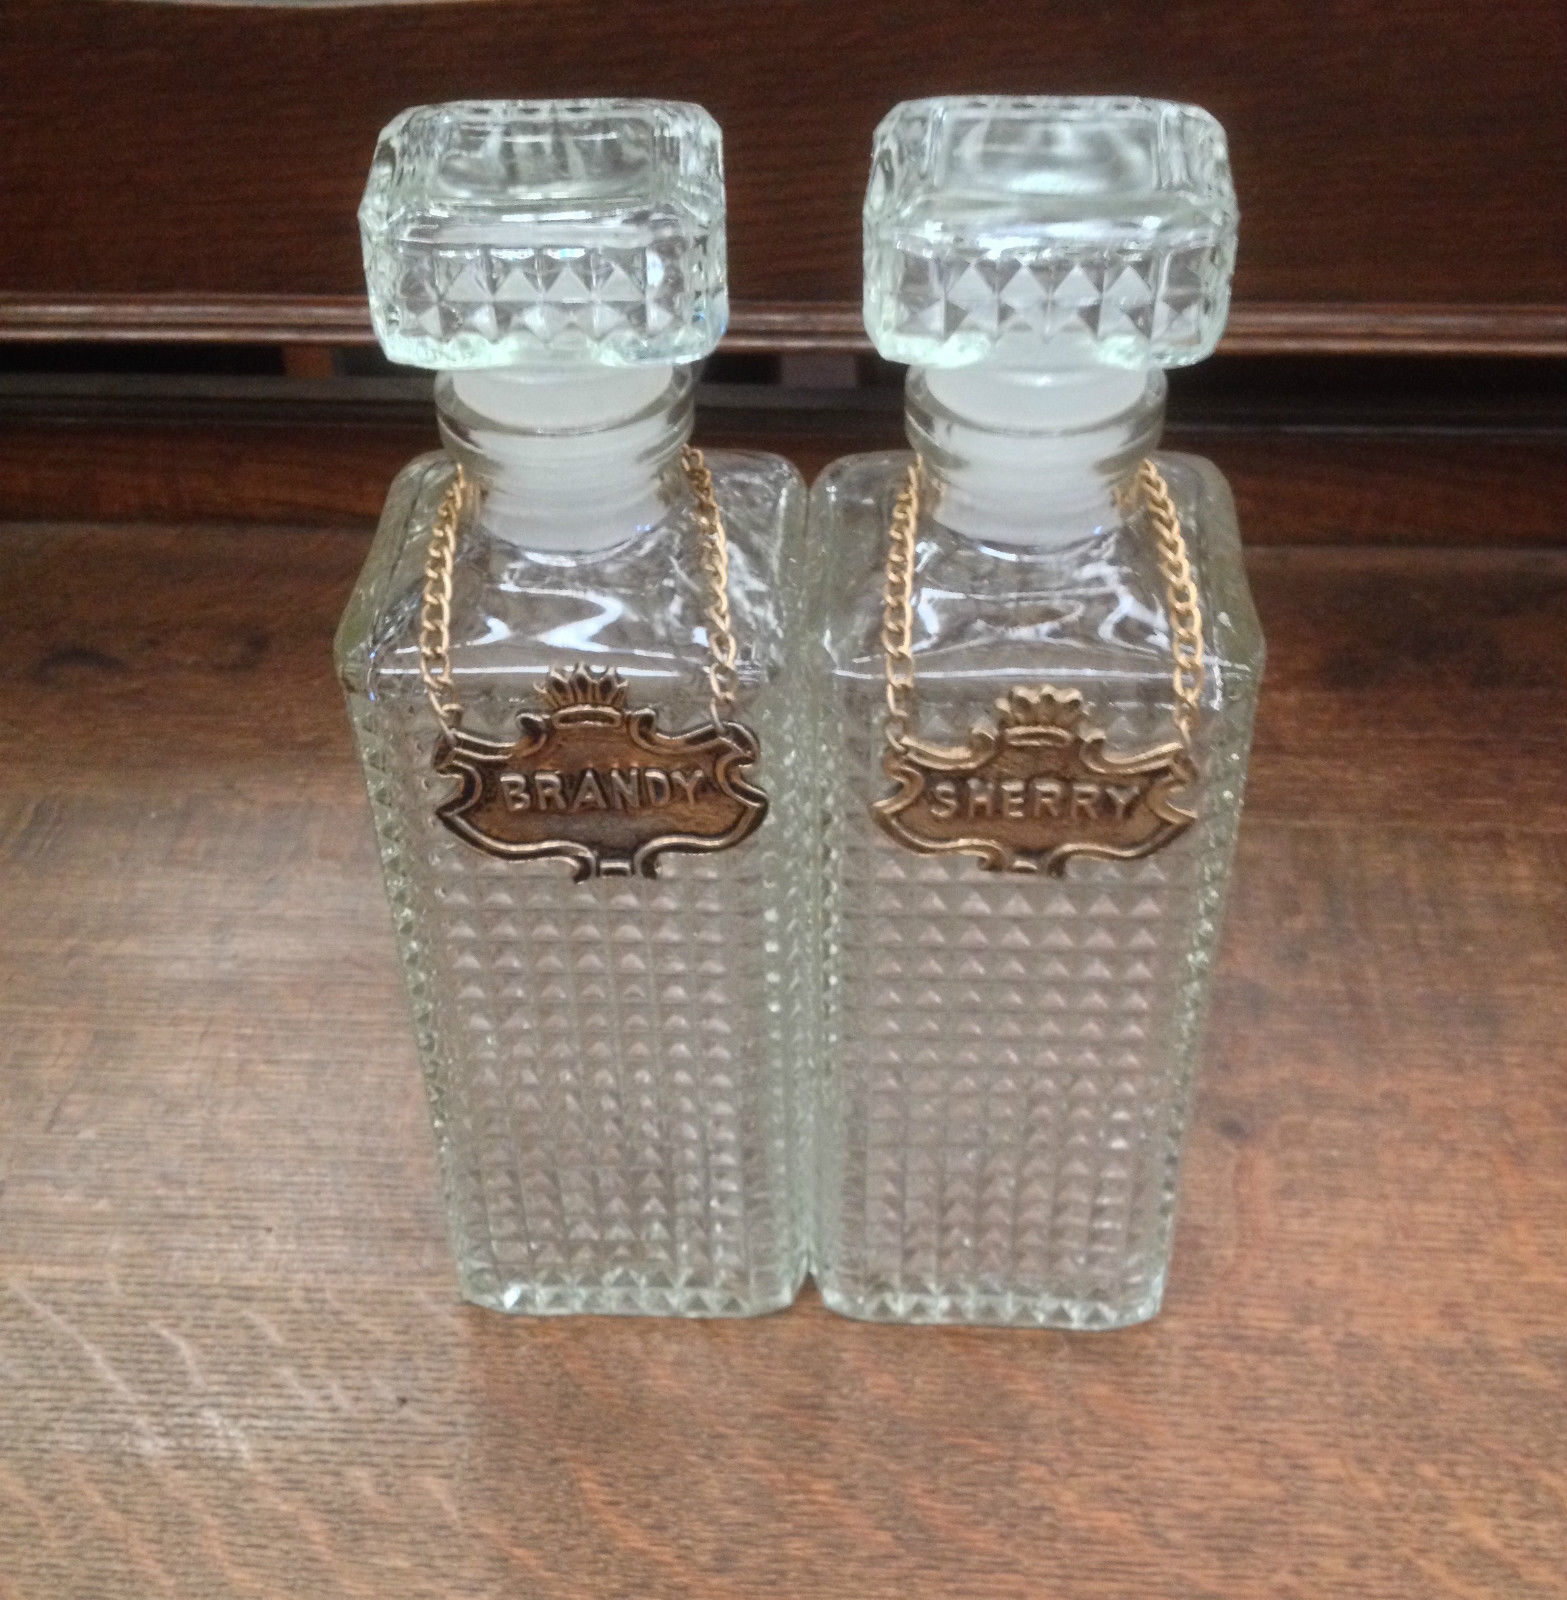 Pair Of Vintage Retro Cut Glass Decanters Brandy Sherry Metal Hanging Labels   Melbourne   Halsey Road Recyclers